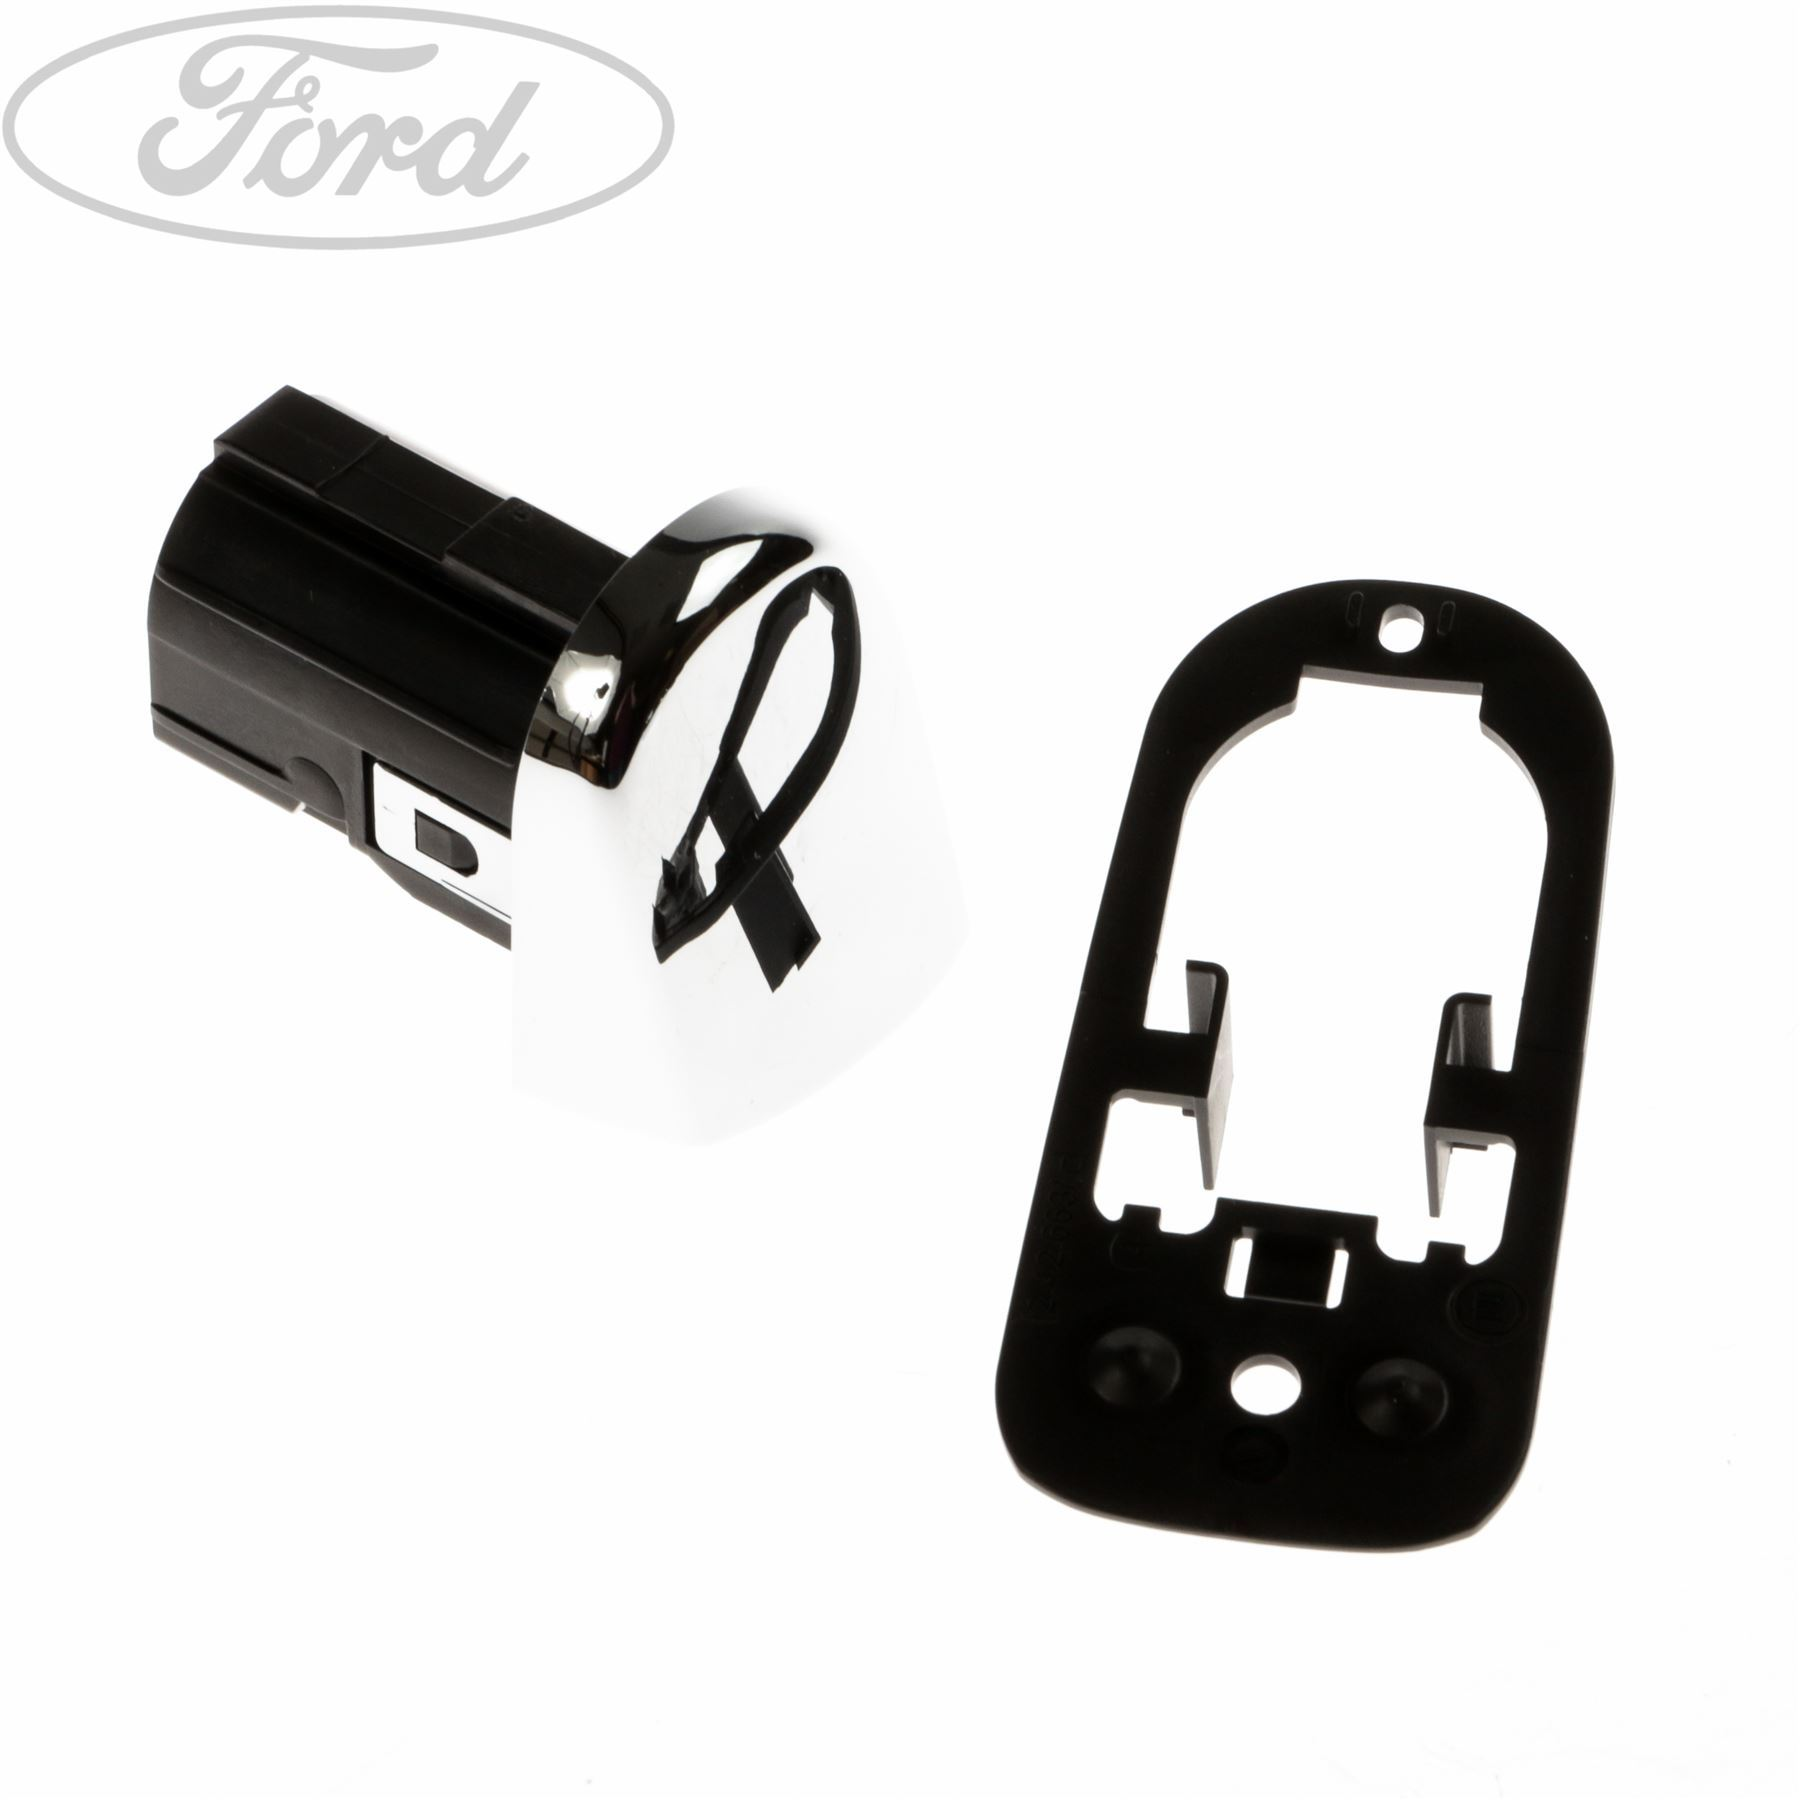 Genuine Ford Ka Front Outer Door Handle 1633072 Ebay Freightliner Xc Chis Auxilary Fuse Relay Box